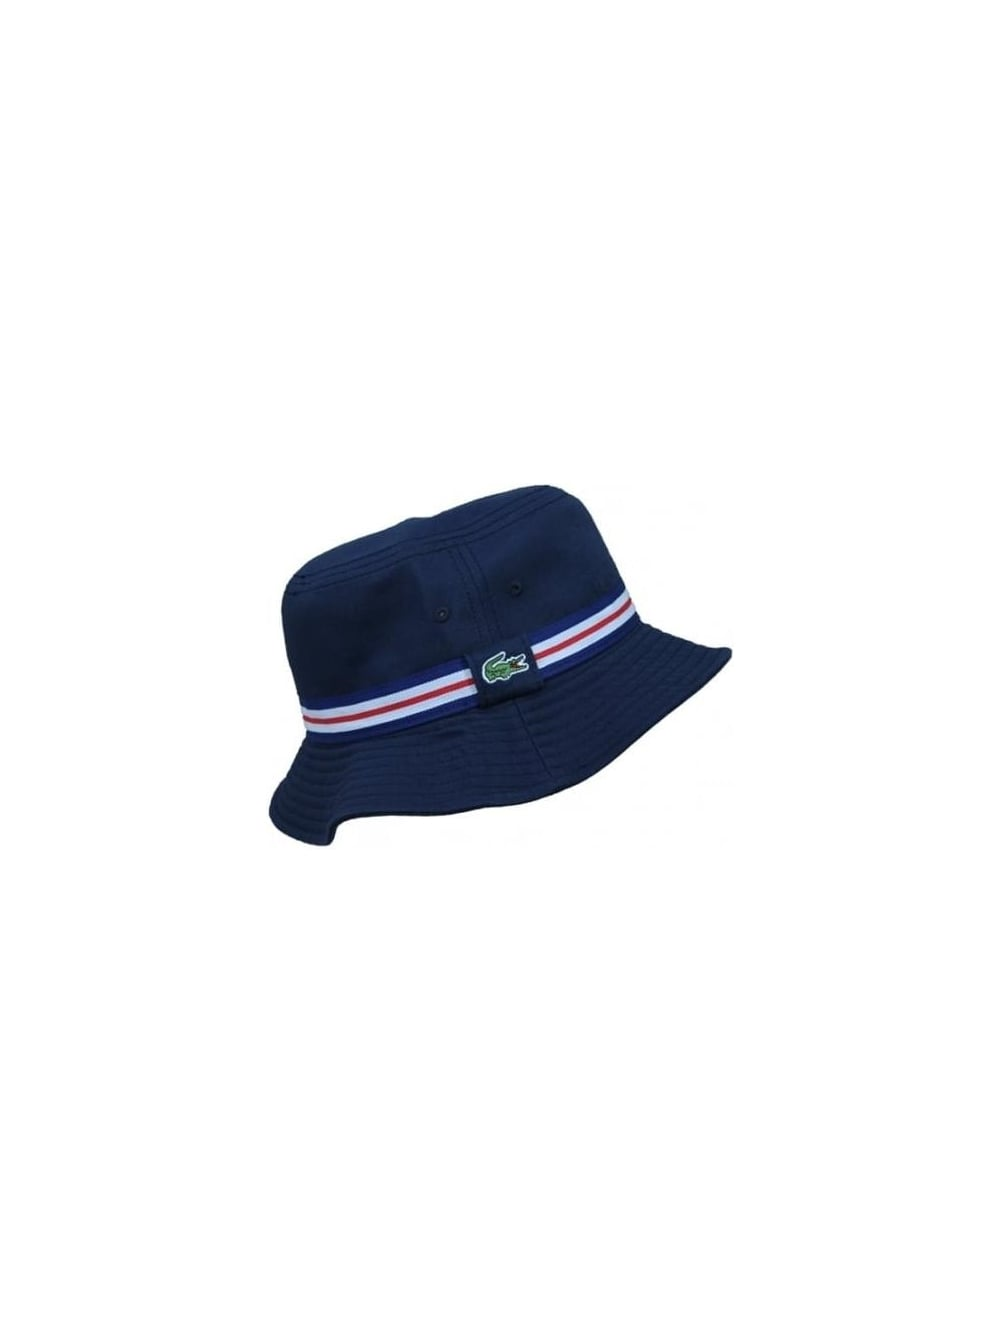 Lacoste Tipped Bucket Hat in Navy Blue - Northern Threads 1283c7cac14b